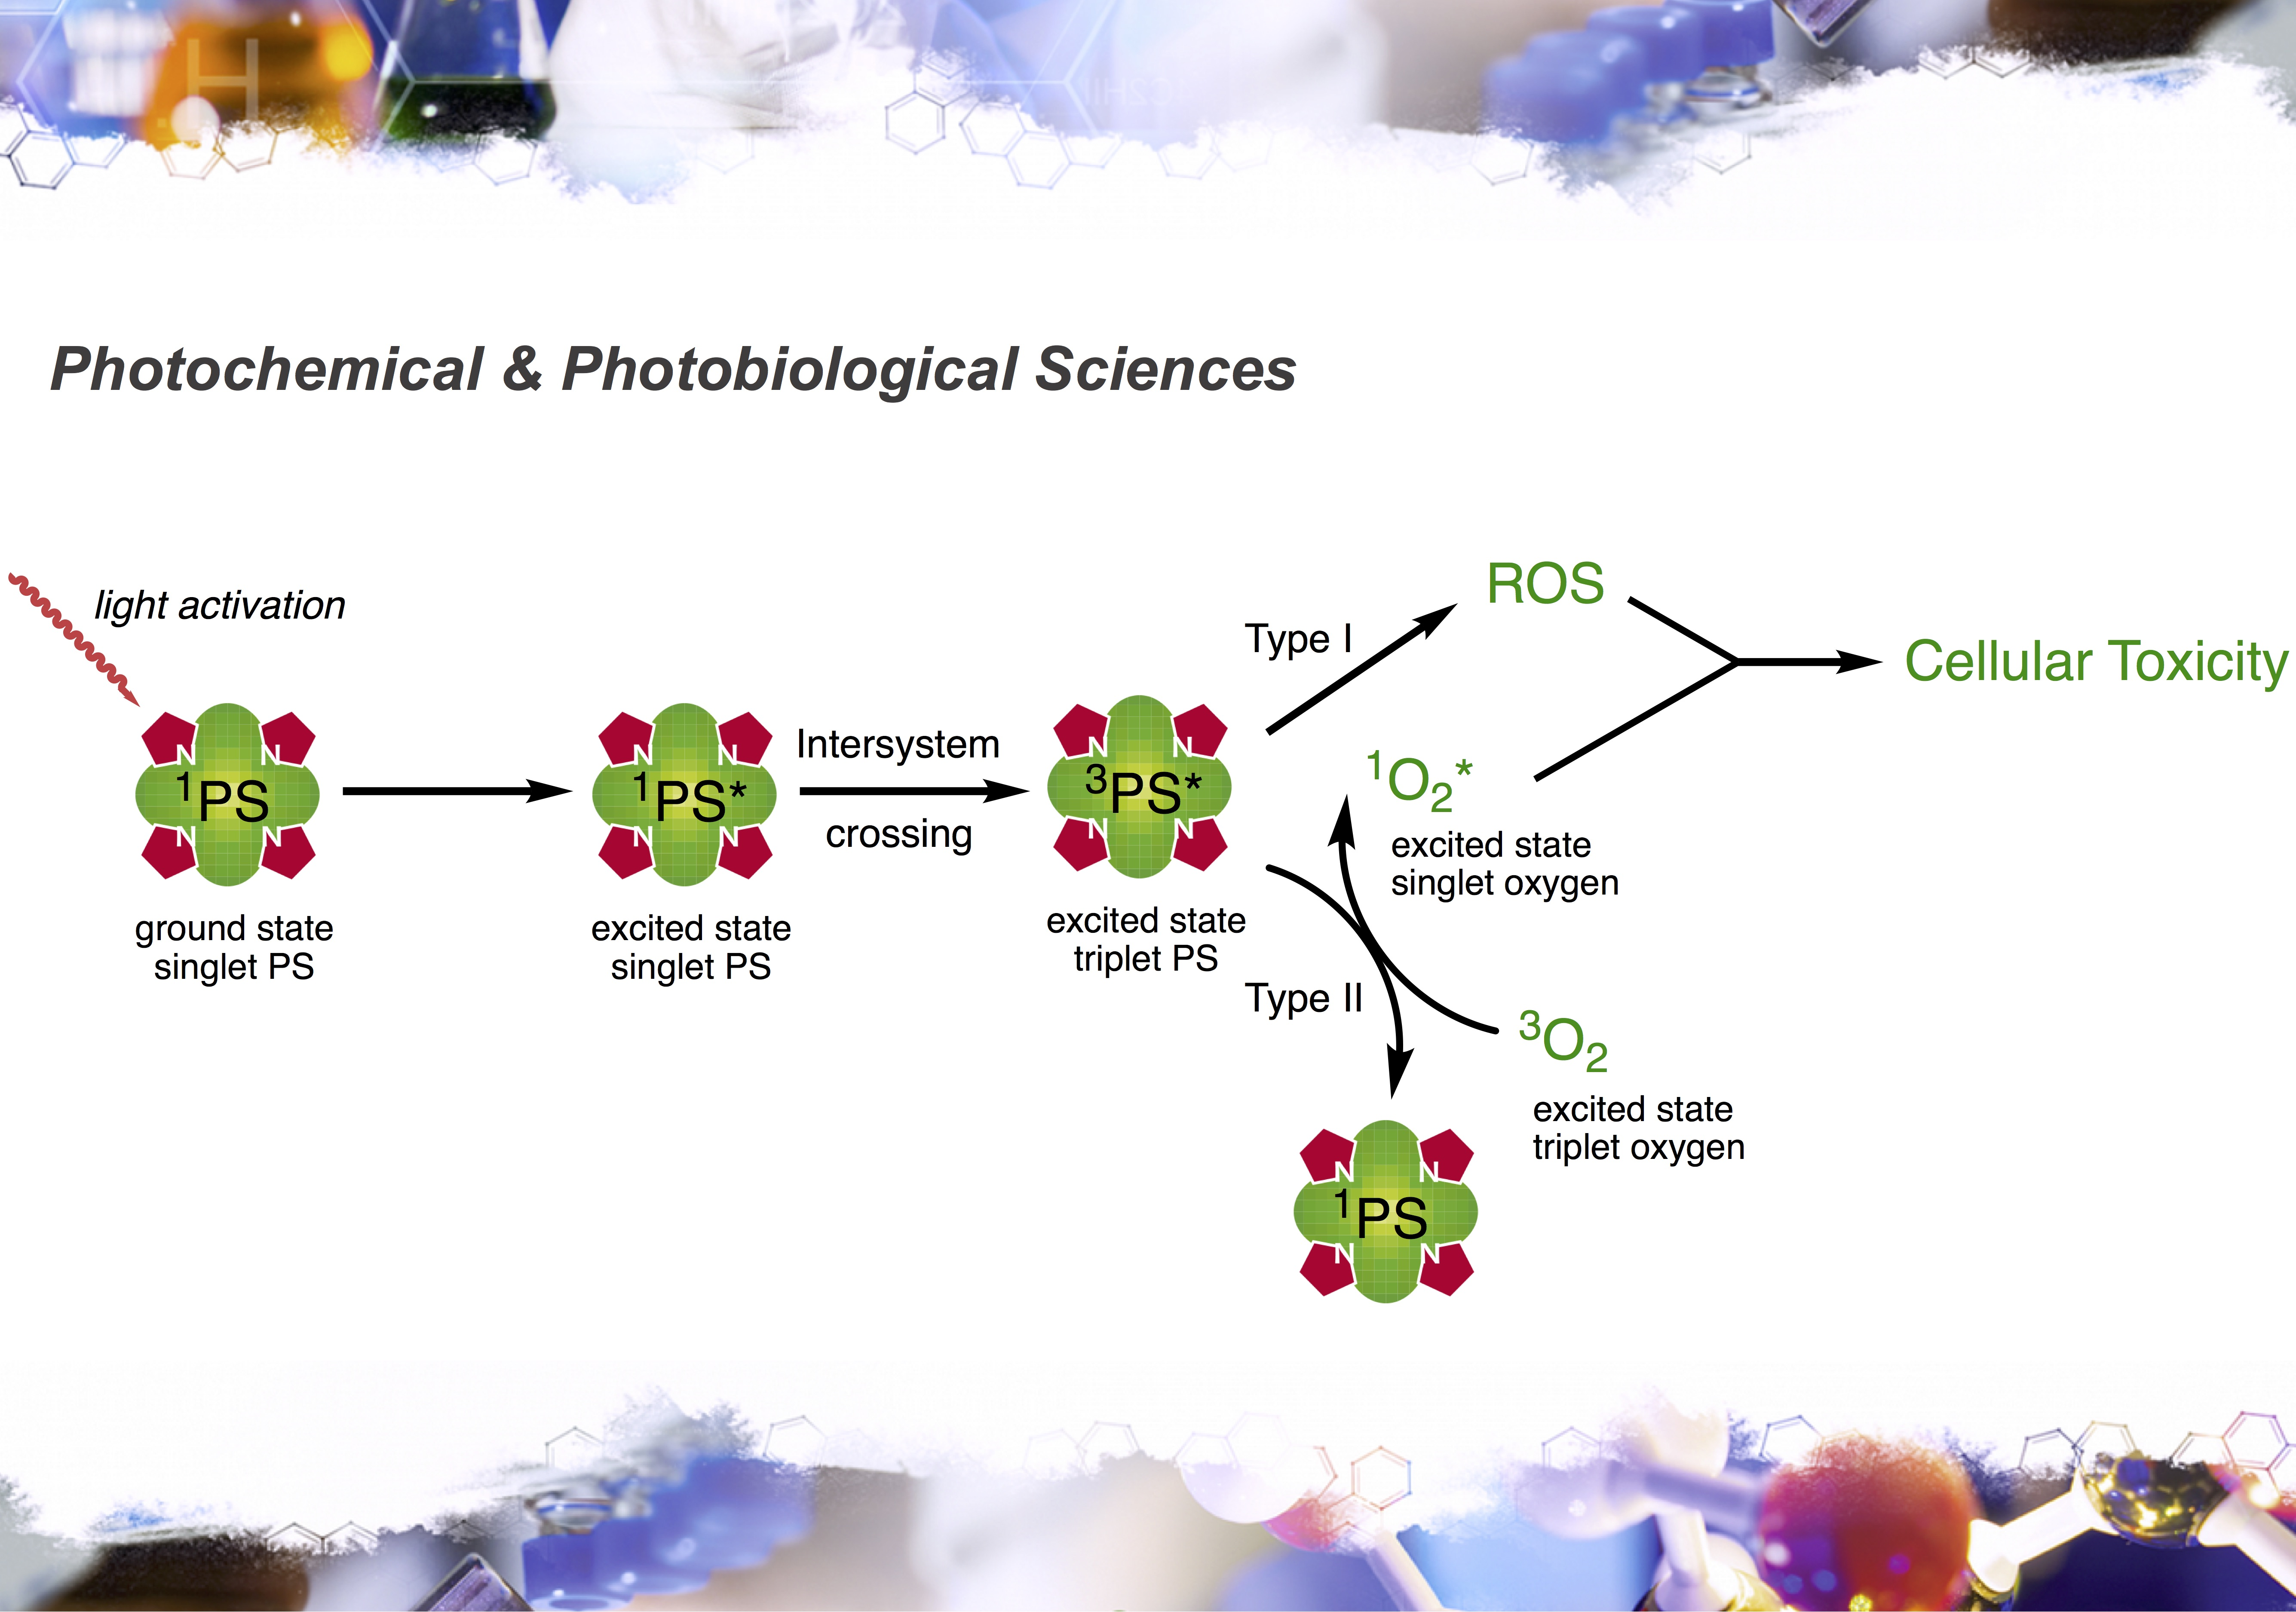 Check out our new perspective in Photochem. Photobiol. Sci.